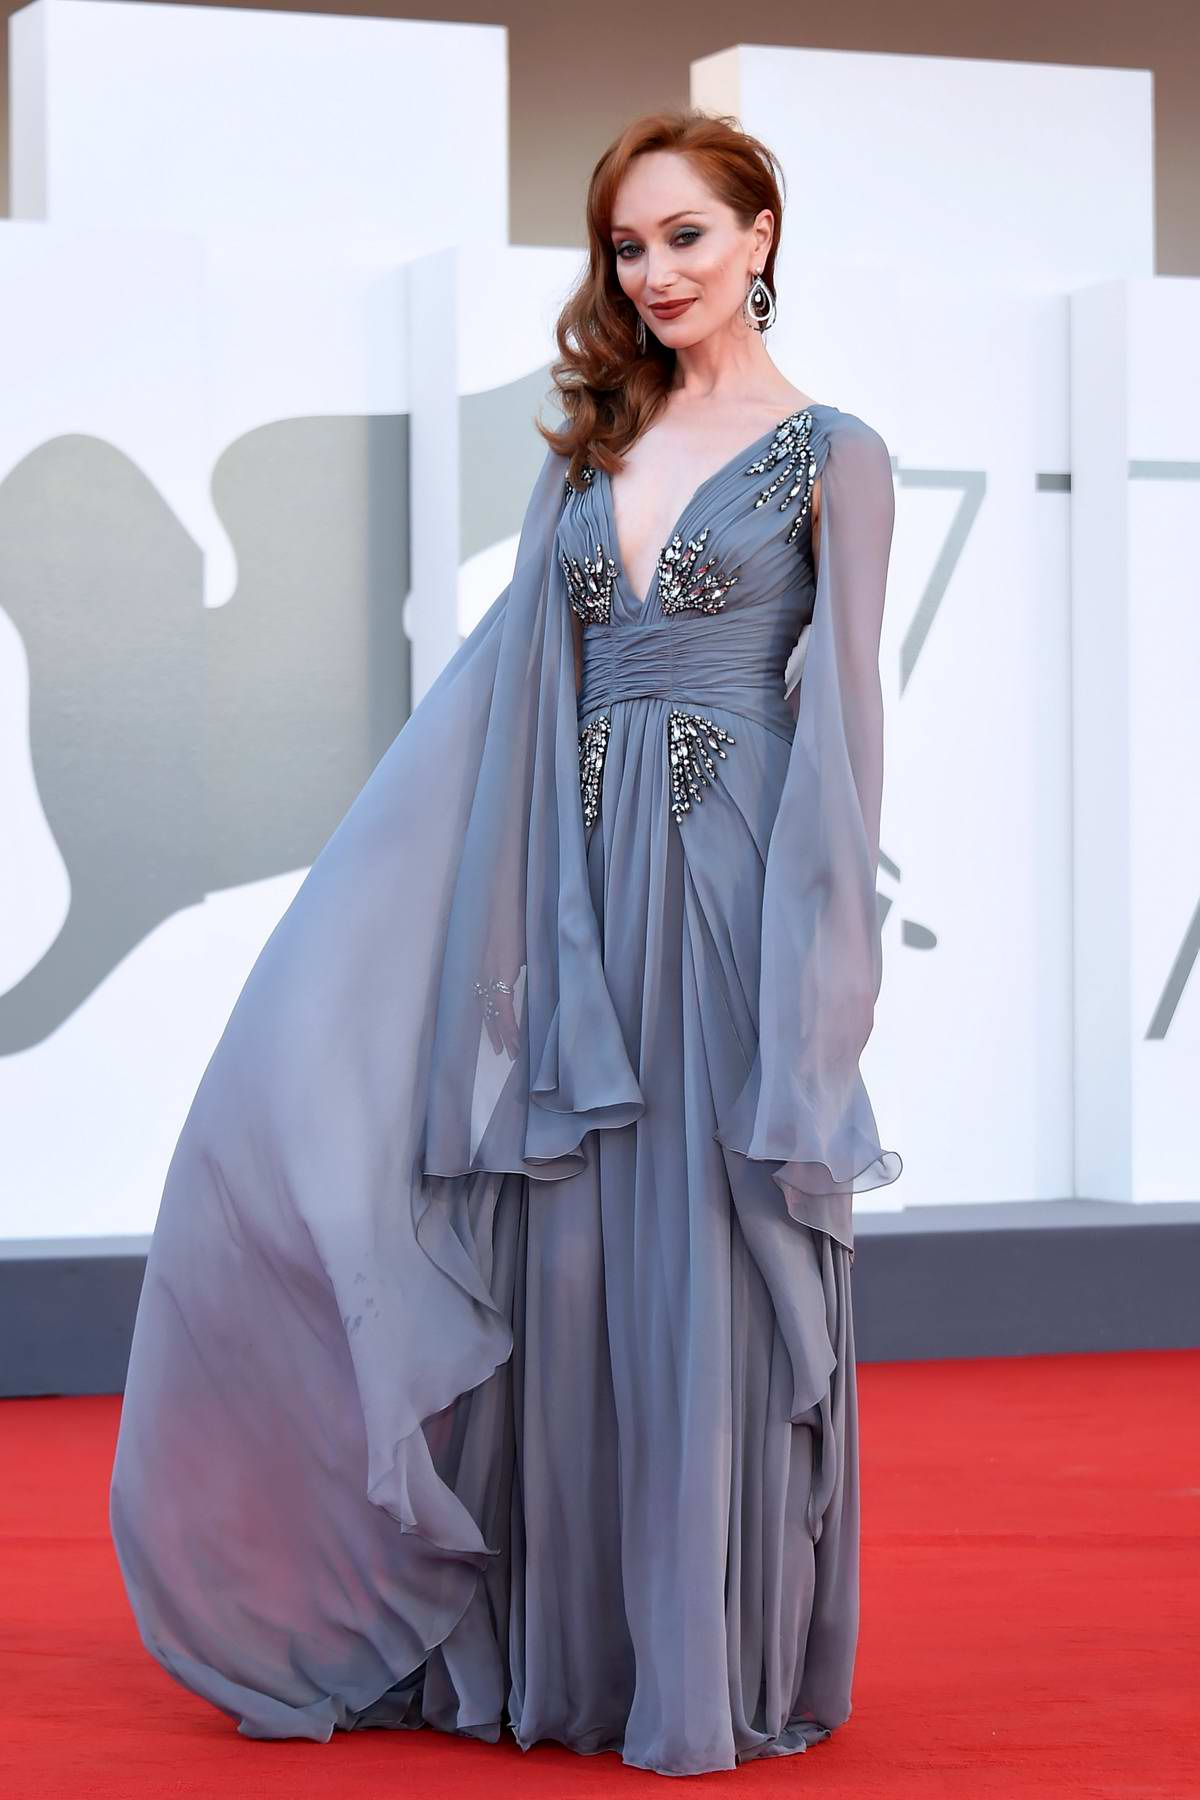 Lotte Verbeek attends the Opening Ceremony and 'The Ties' Premiere at the 77th Venice Film Festival 2020 in Venice, Italy